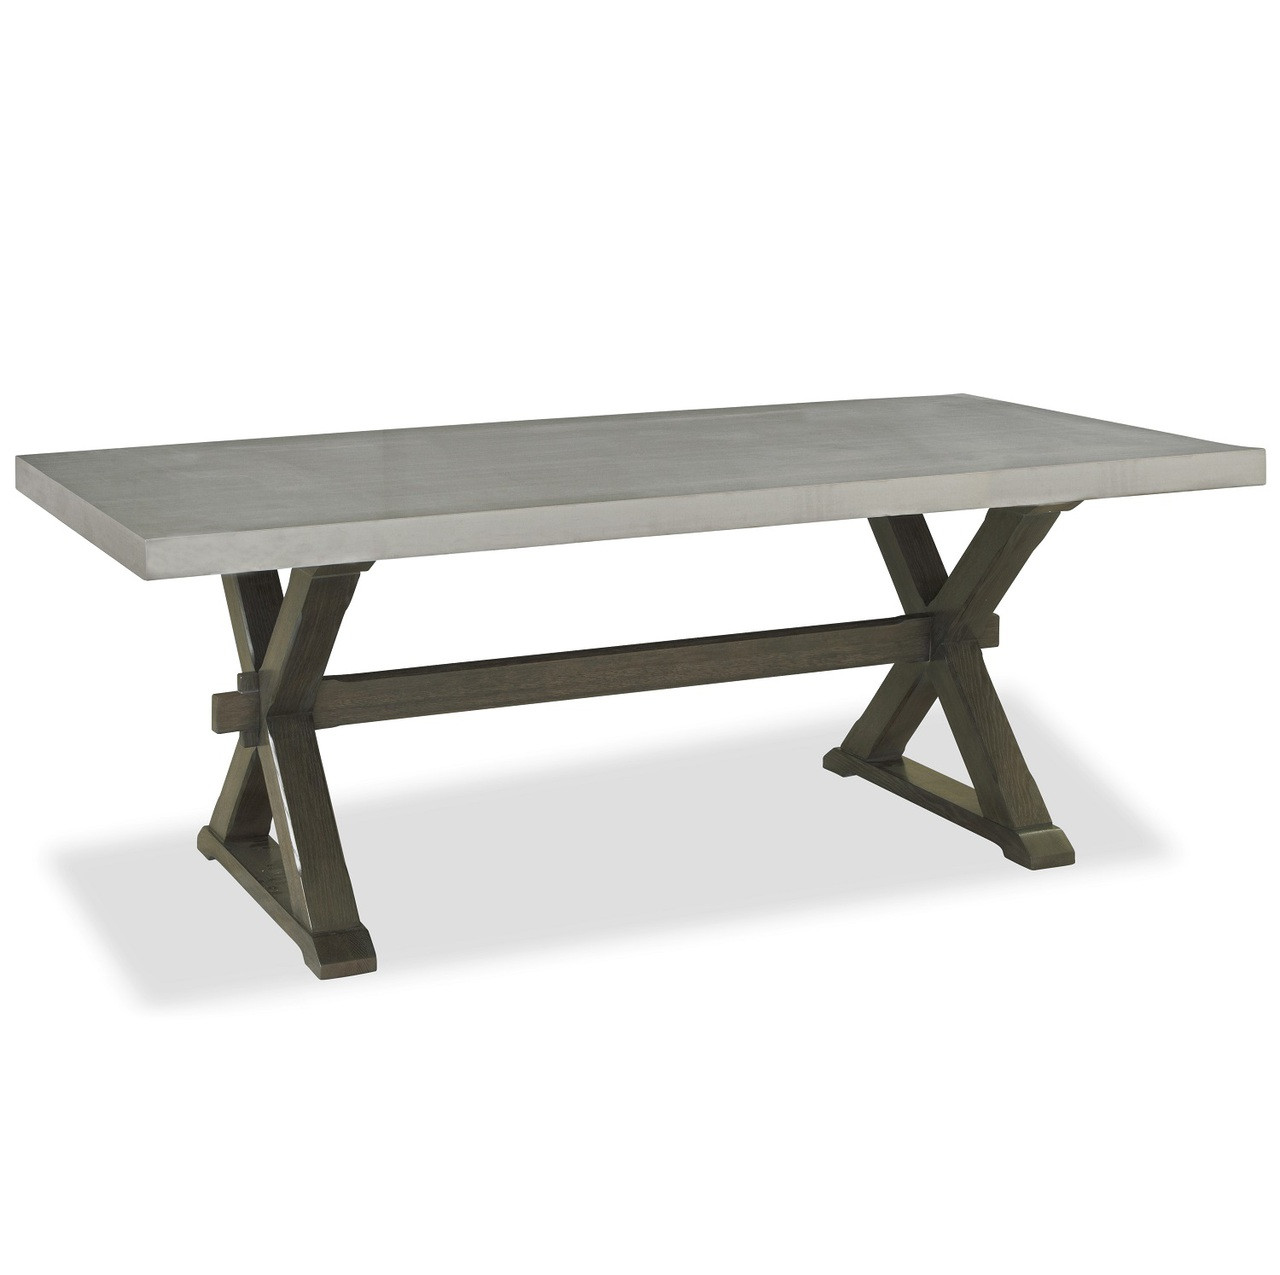 Flatiron oak wood stainless steel x base dining table for X dining room table